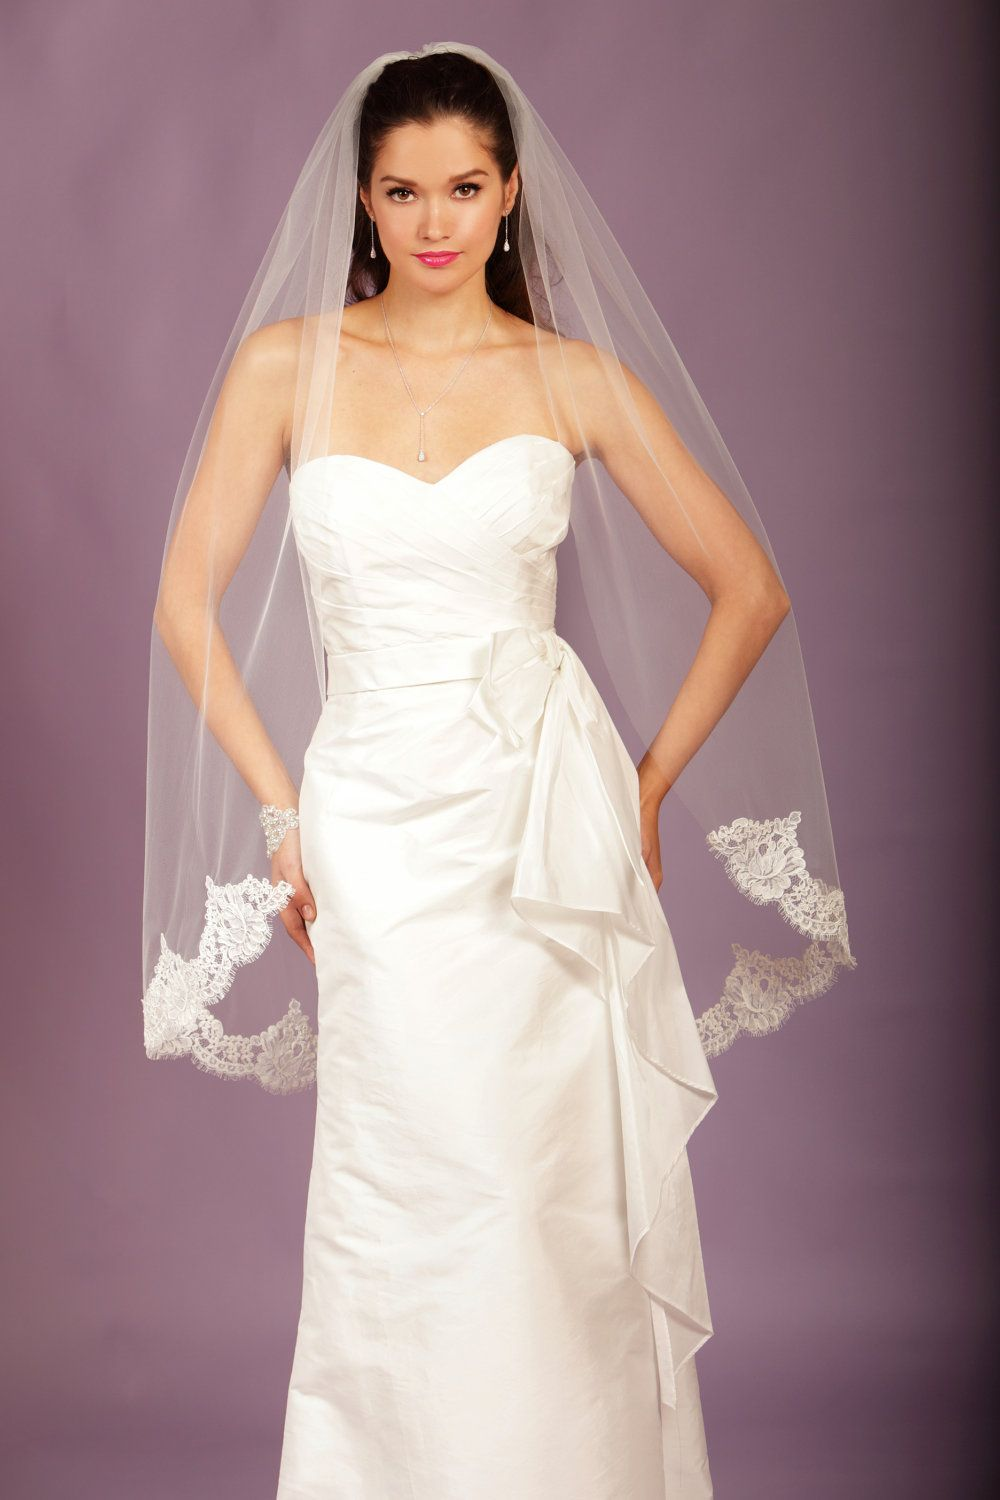 Ivory silk and lace wedding dress  COMBO Wedding Veil  Fingertip with Alencon Lace  made to order